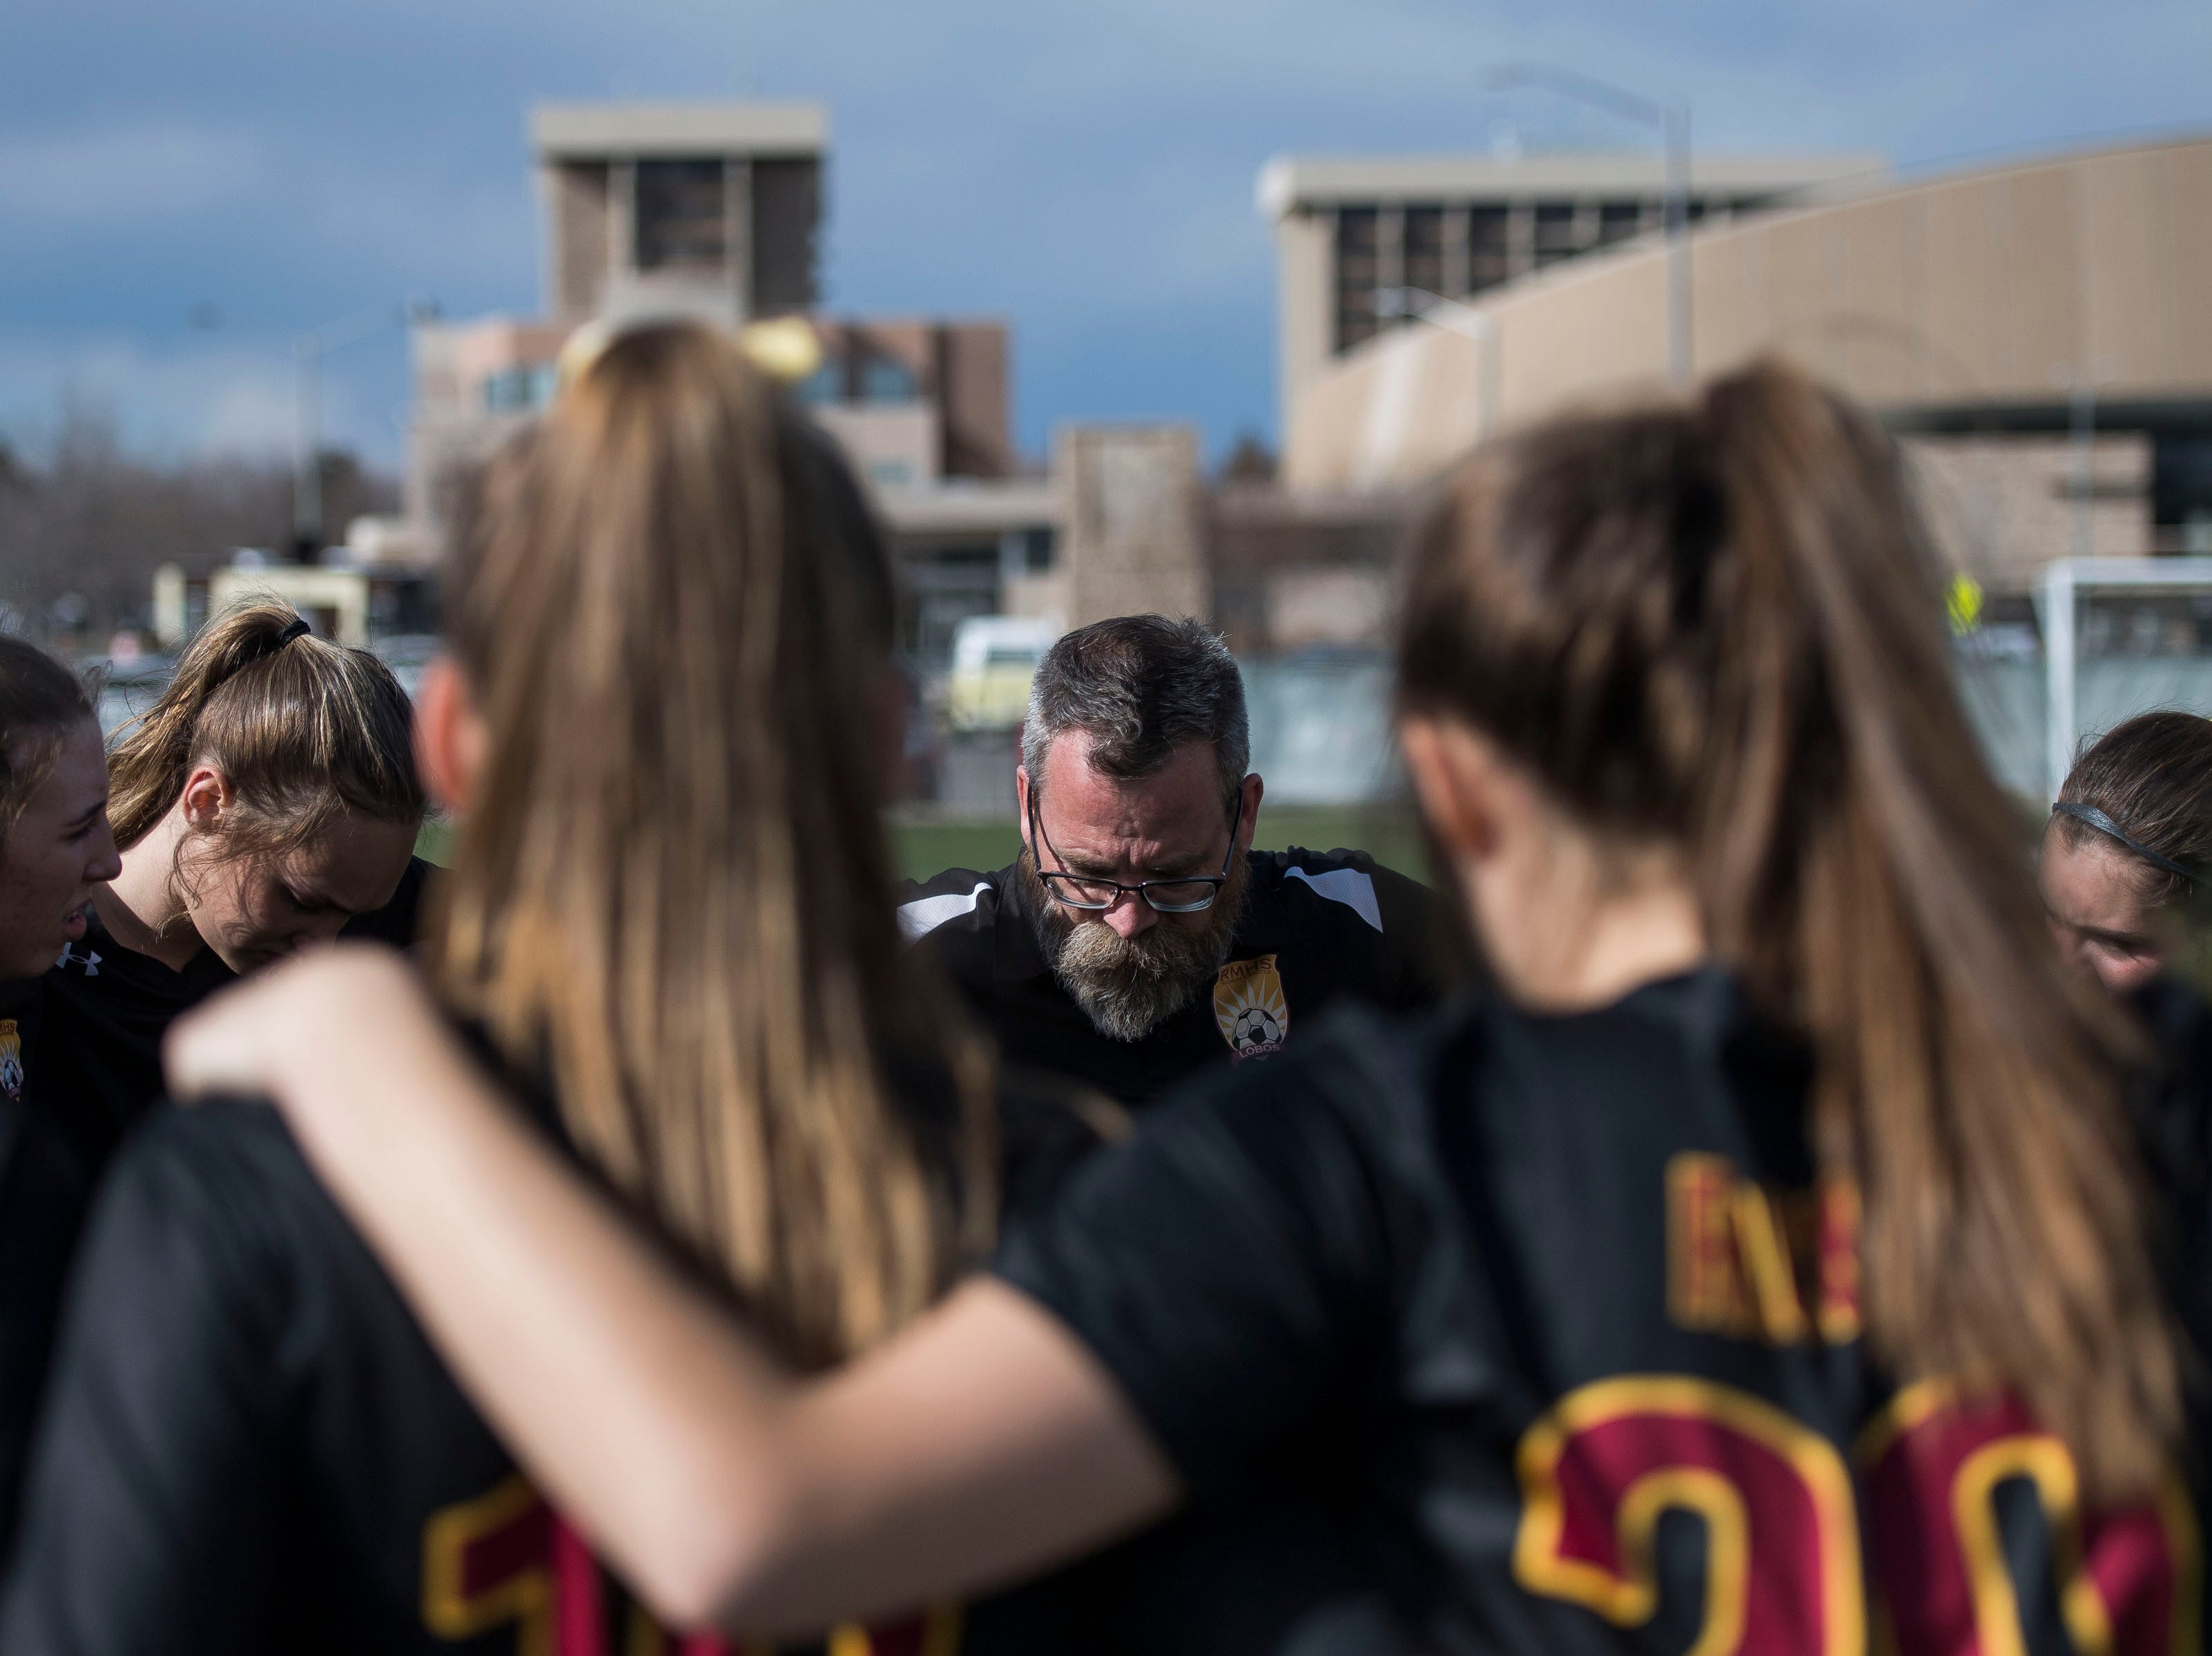 Rocky Mountain High School head coach Ron Clark huddles up with the team before a game against Fossil Ridge High School on Friday, April 4, 2019, at Colorado State University's soccer field in Fort Collins, Colo.